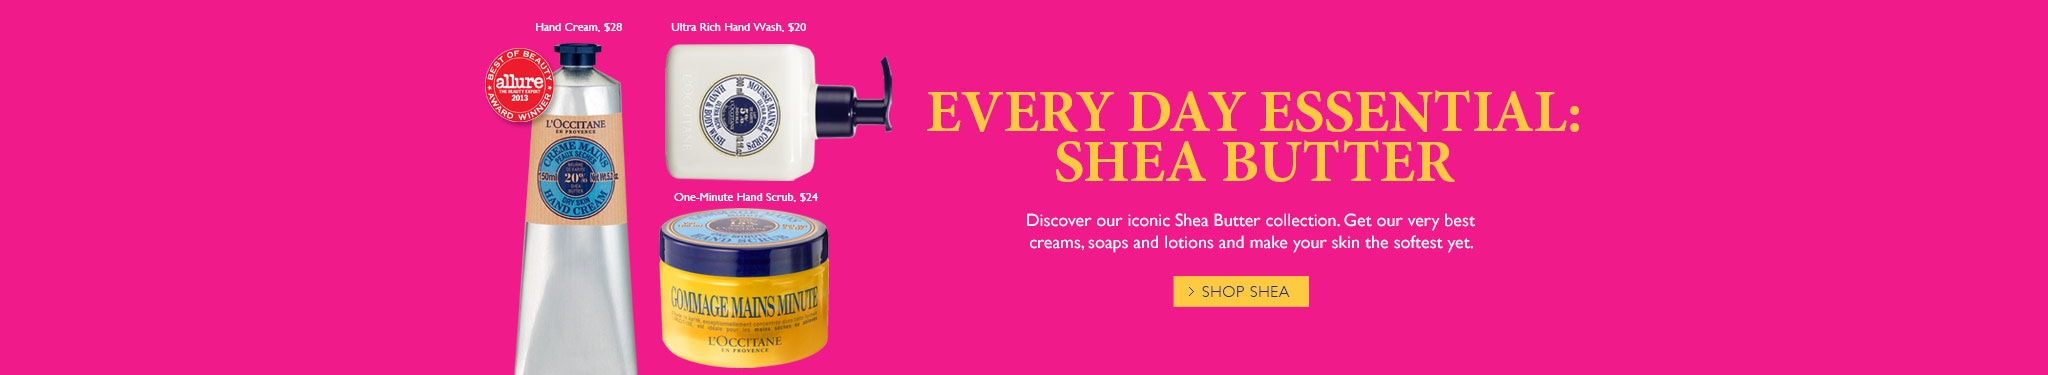 Everyday essential: Shea Butter.  Shop Shea